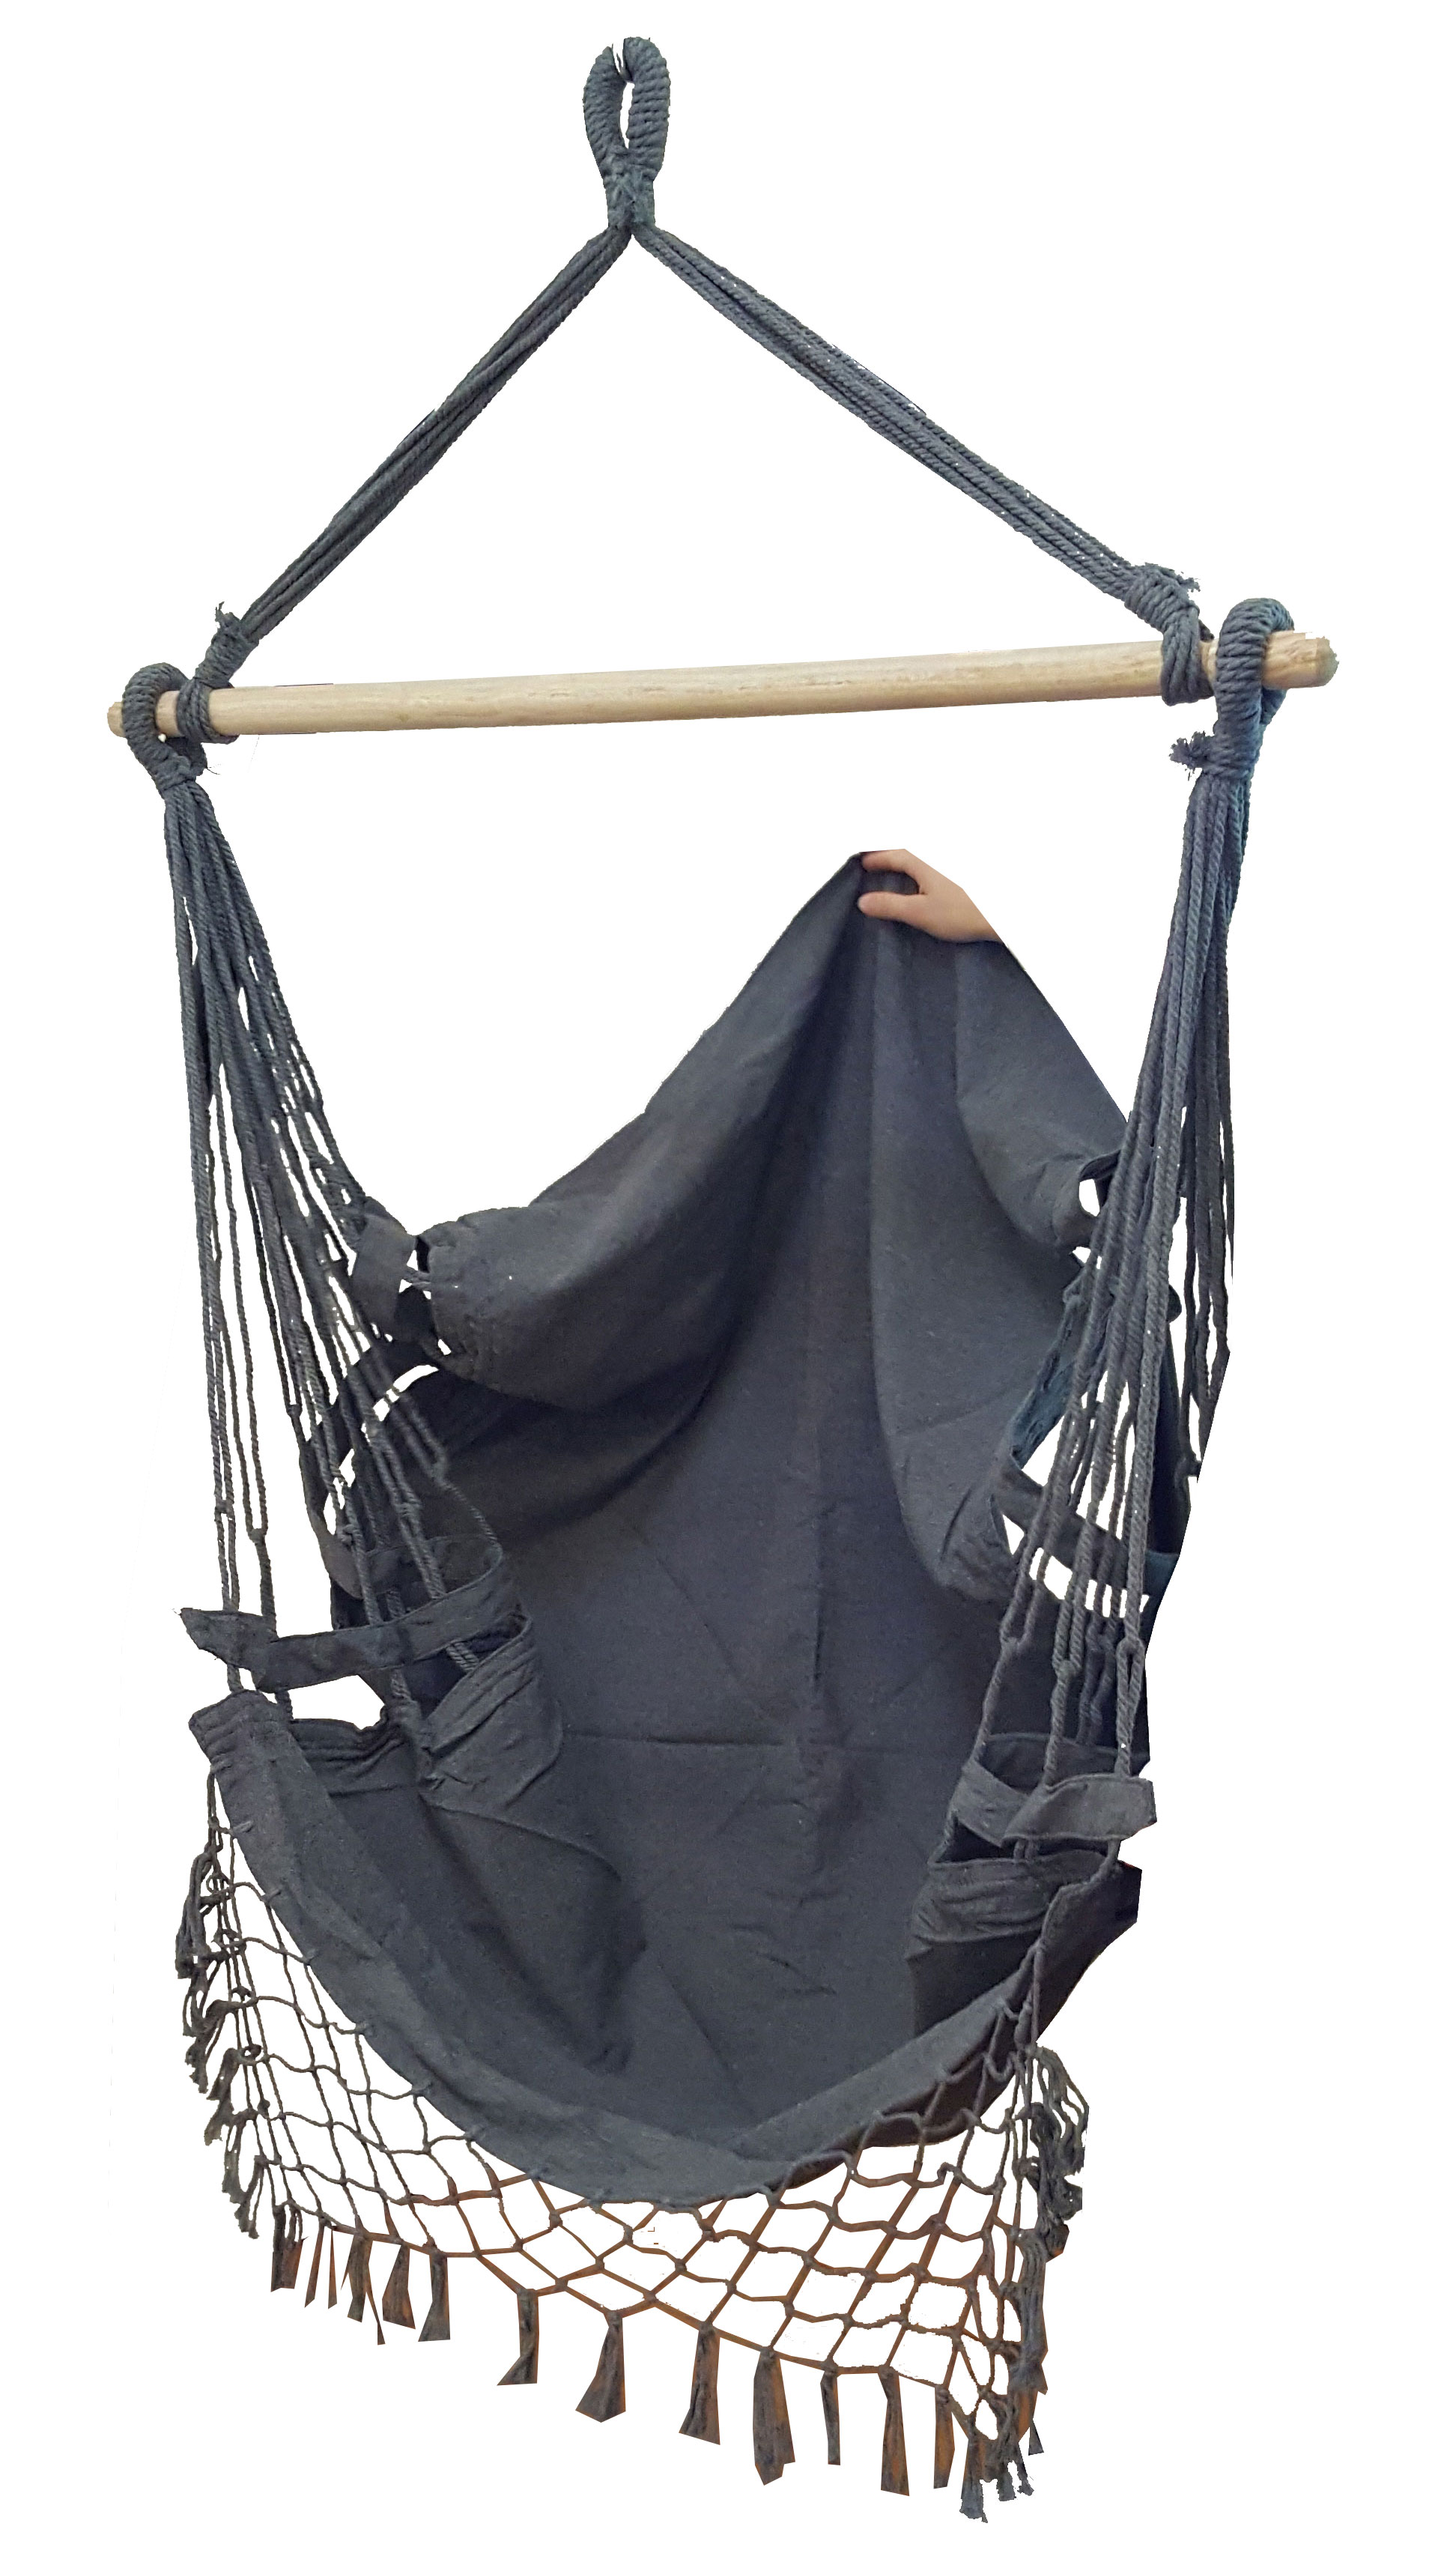 Black Hanging Chair Black Canvas Hammock Chair With Tassels Heavenly Hammocks